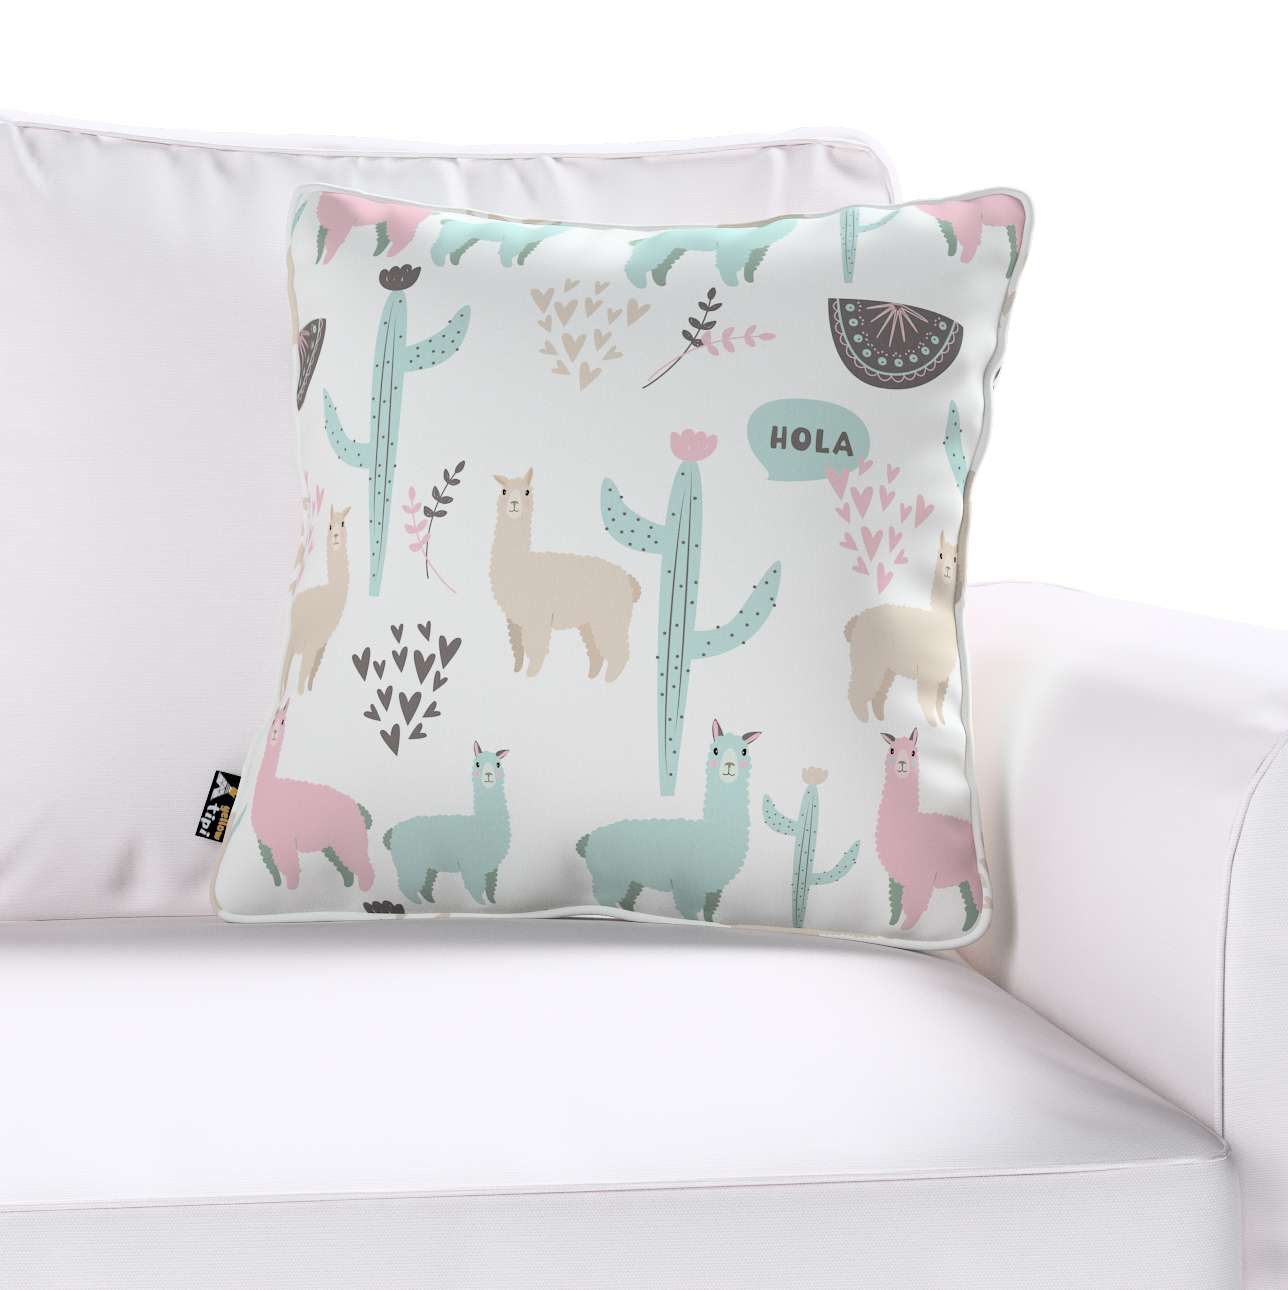 Lola piped cushion cover in collection Magic Collection, fabric: 500-01